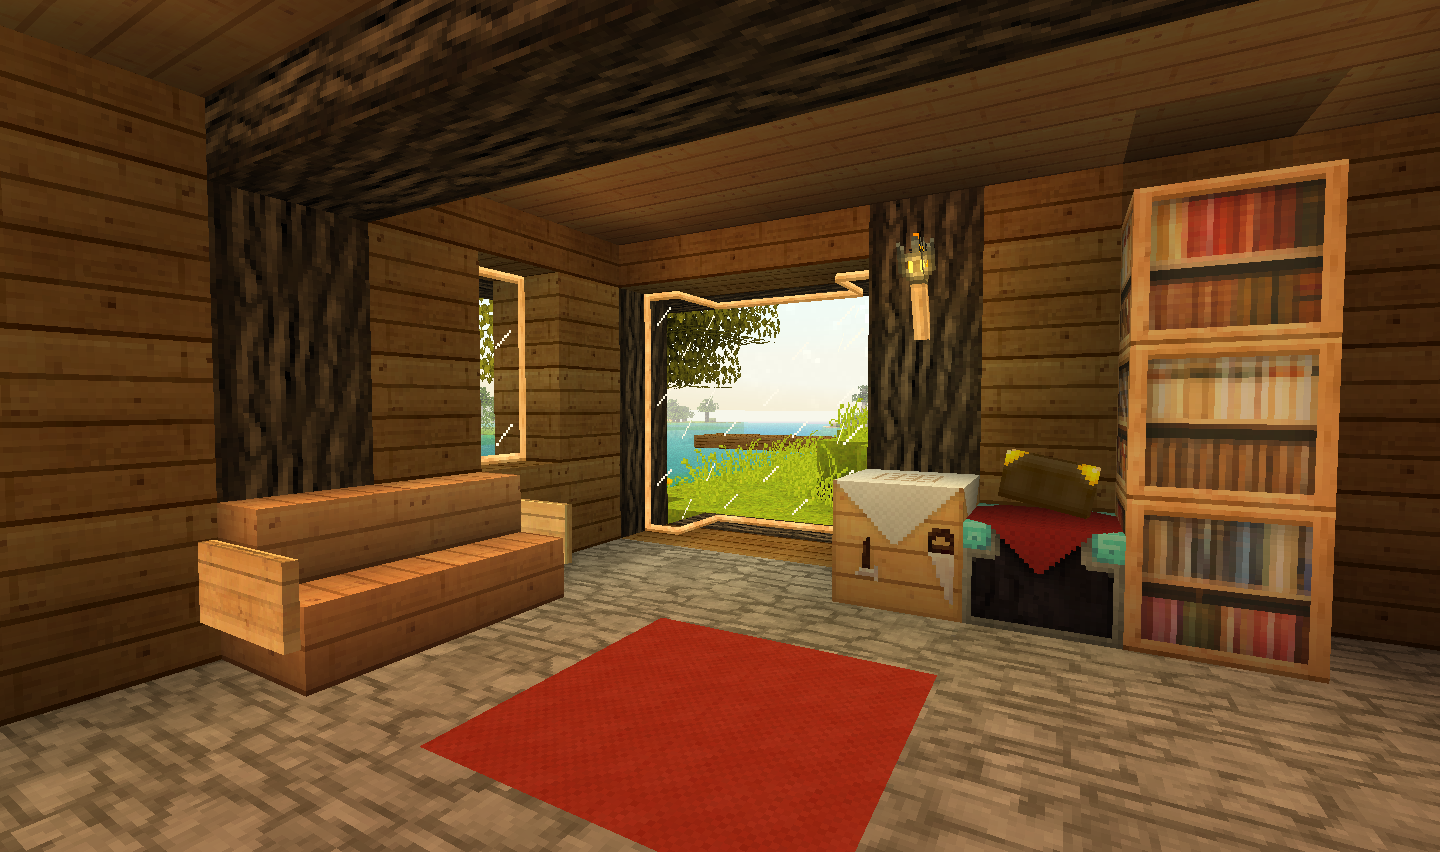 http://minecraft-forum.net/wp-content/uploads/2012/12/33569__Willpack-HD-Texture-Pack-2.png